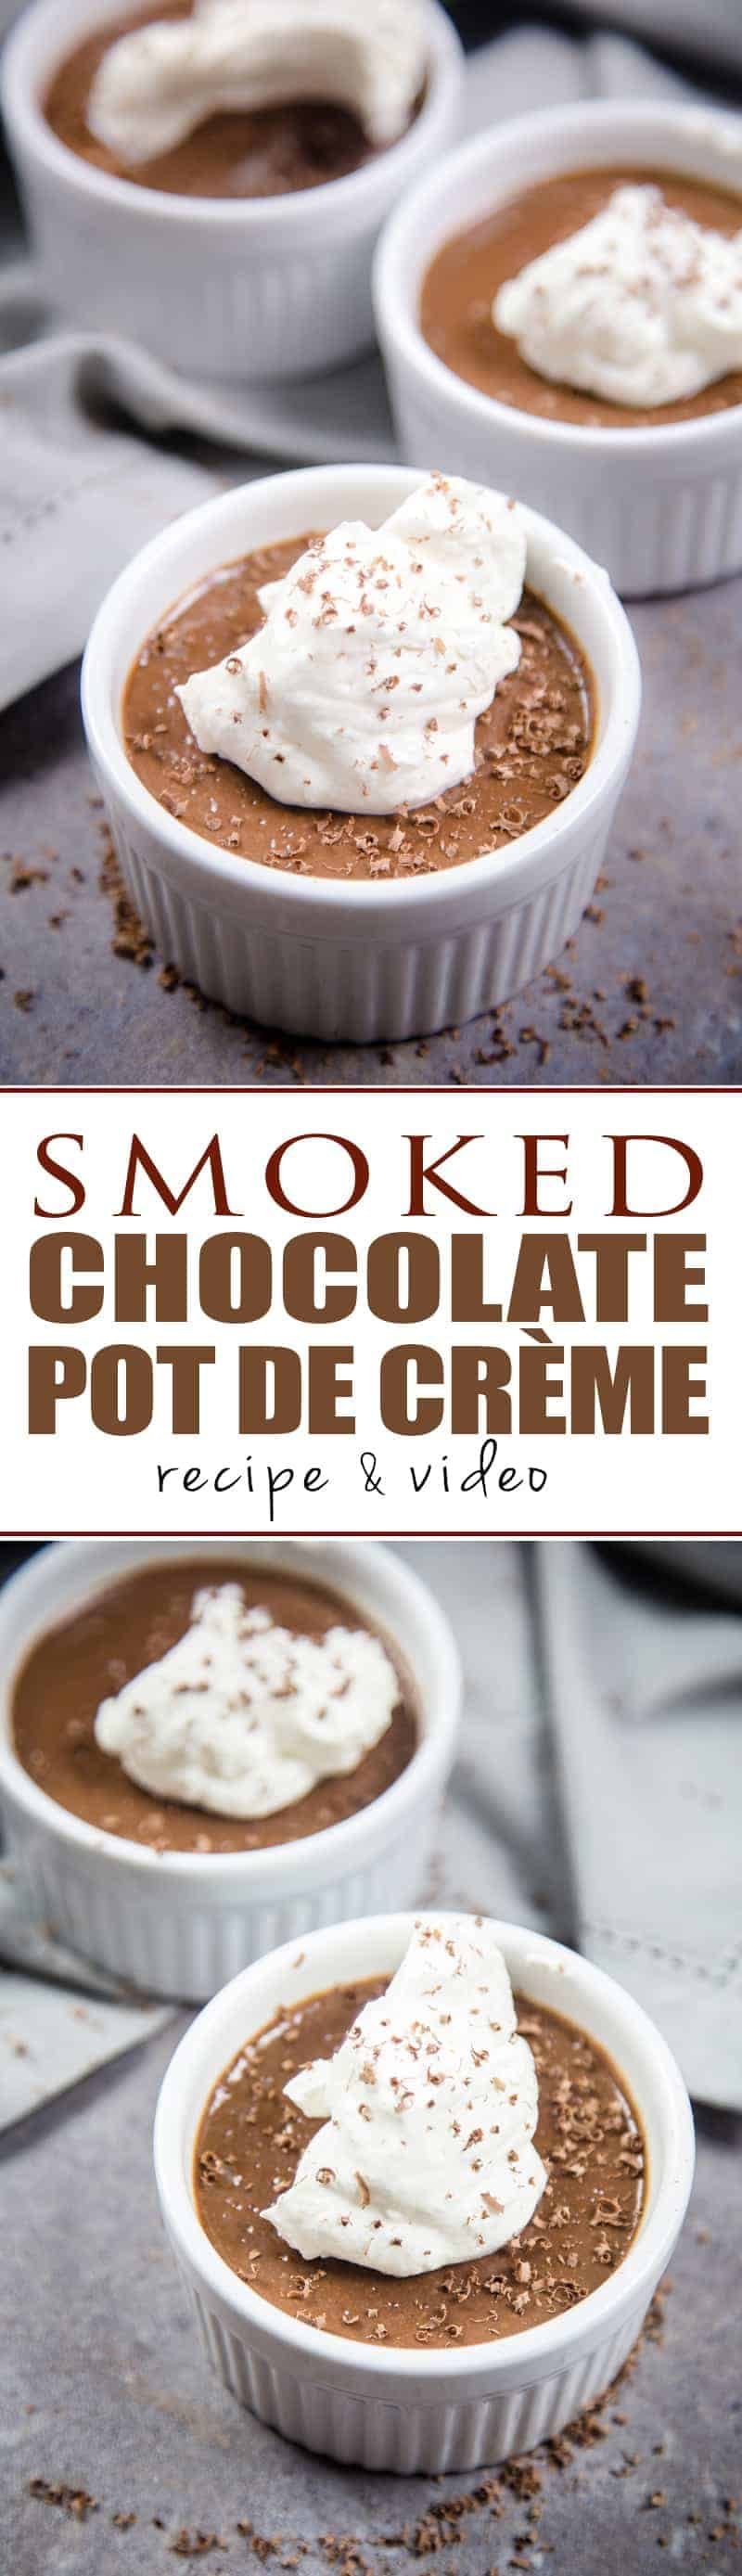 Smoked Chocolate Pot de Crème (no bake). Silky, chocolaty, slightly smoky, and absolutely indulgent. Full recipe and video tutorial.